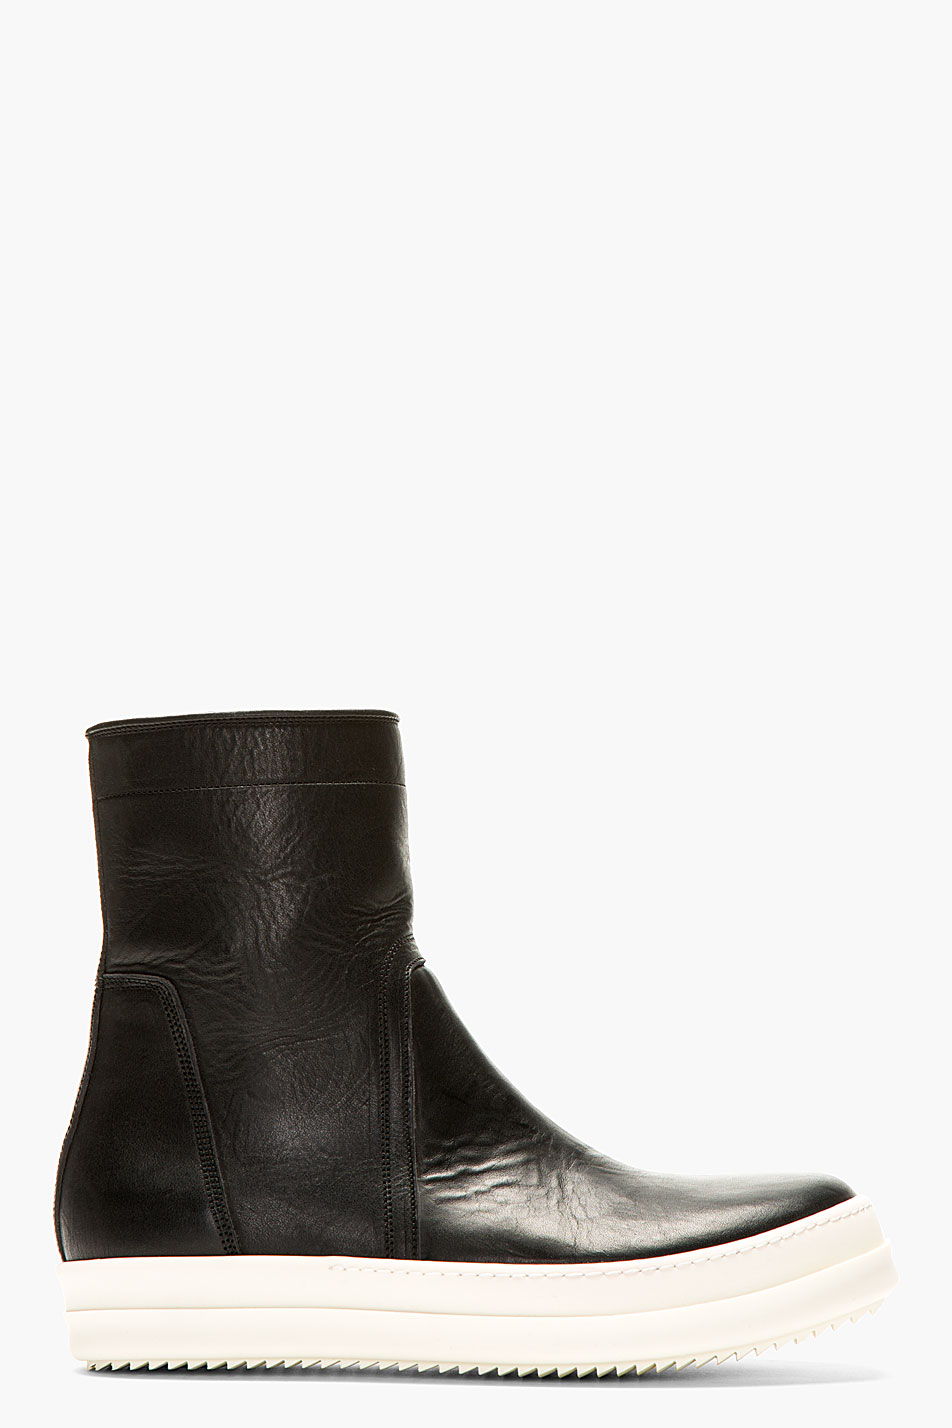 rick owens black and white leather minimalist boots